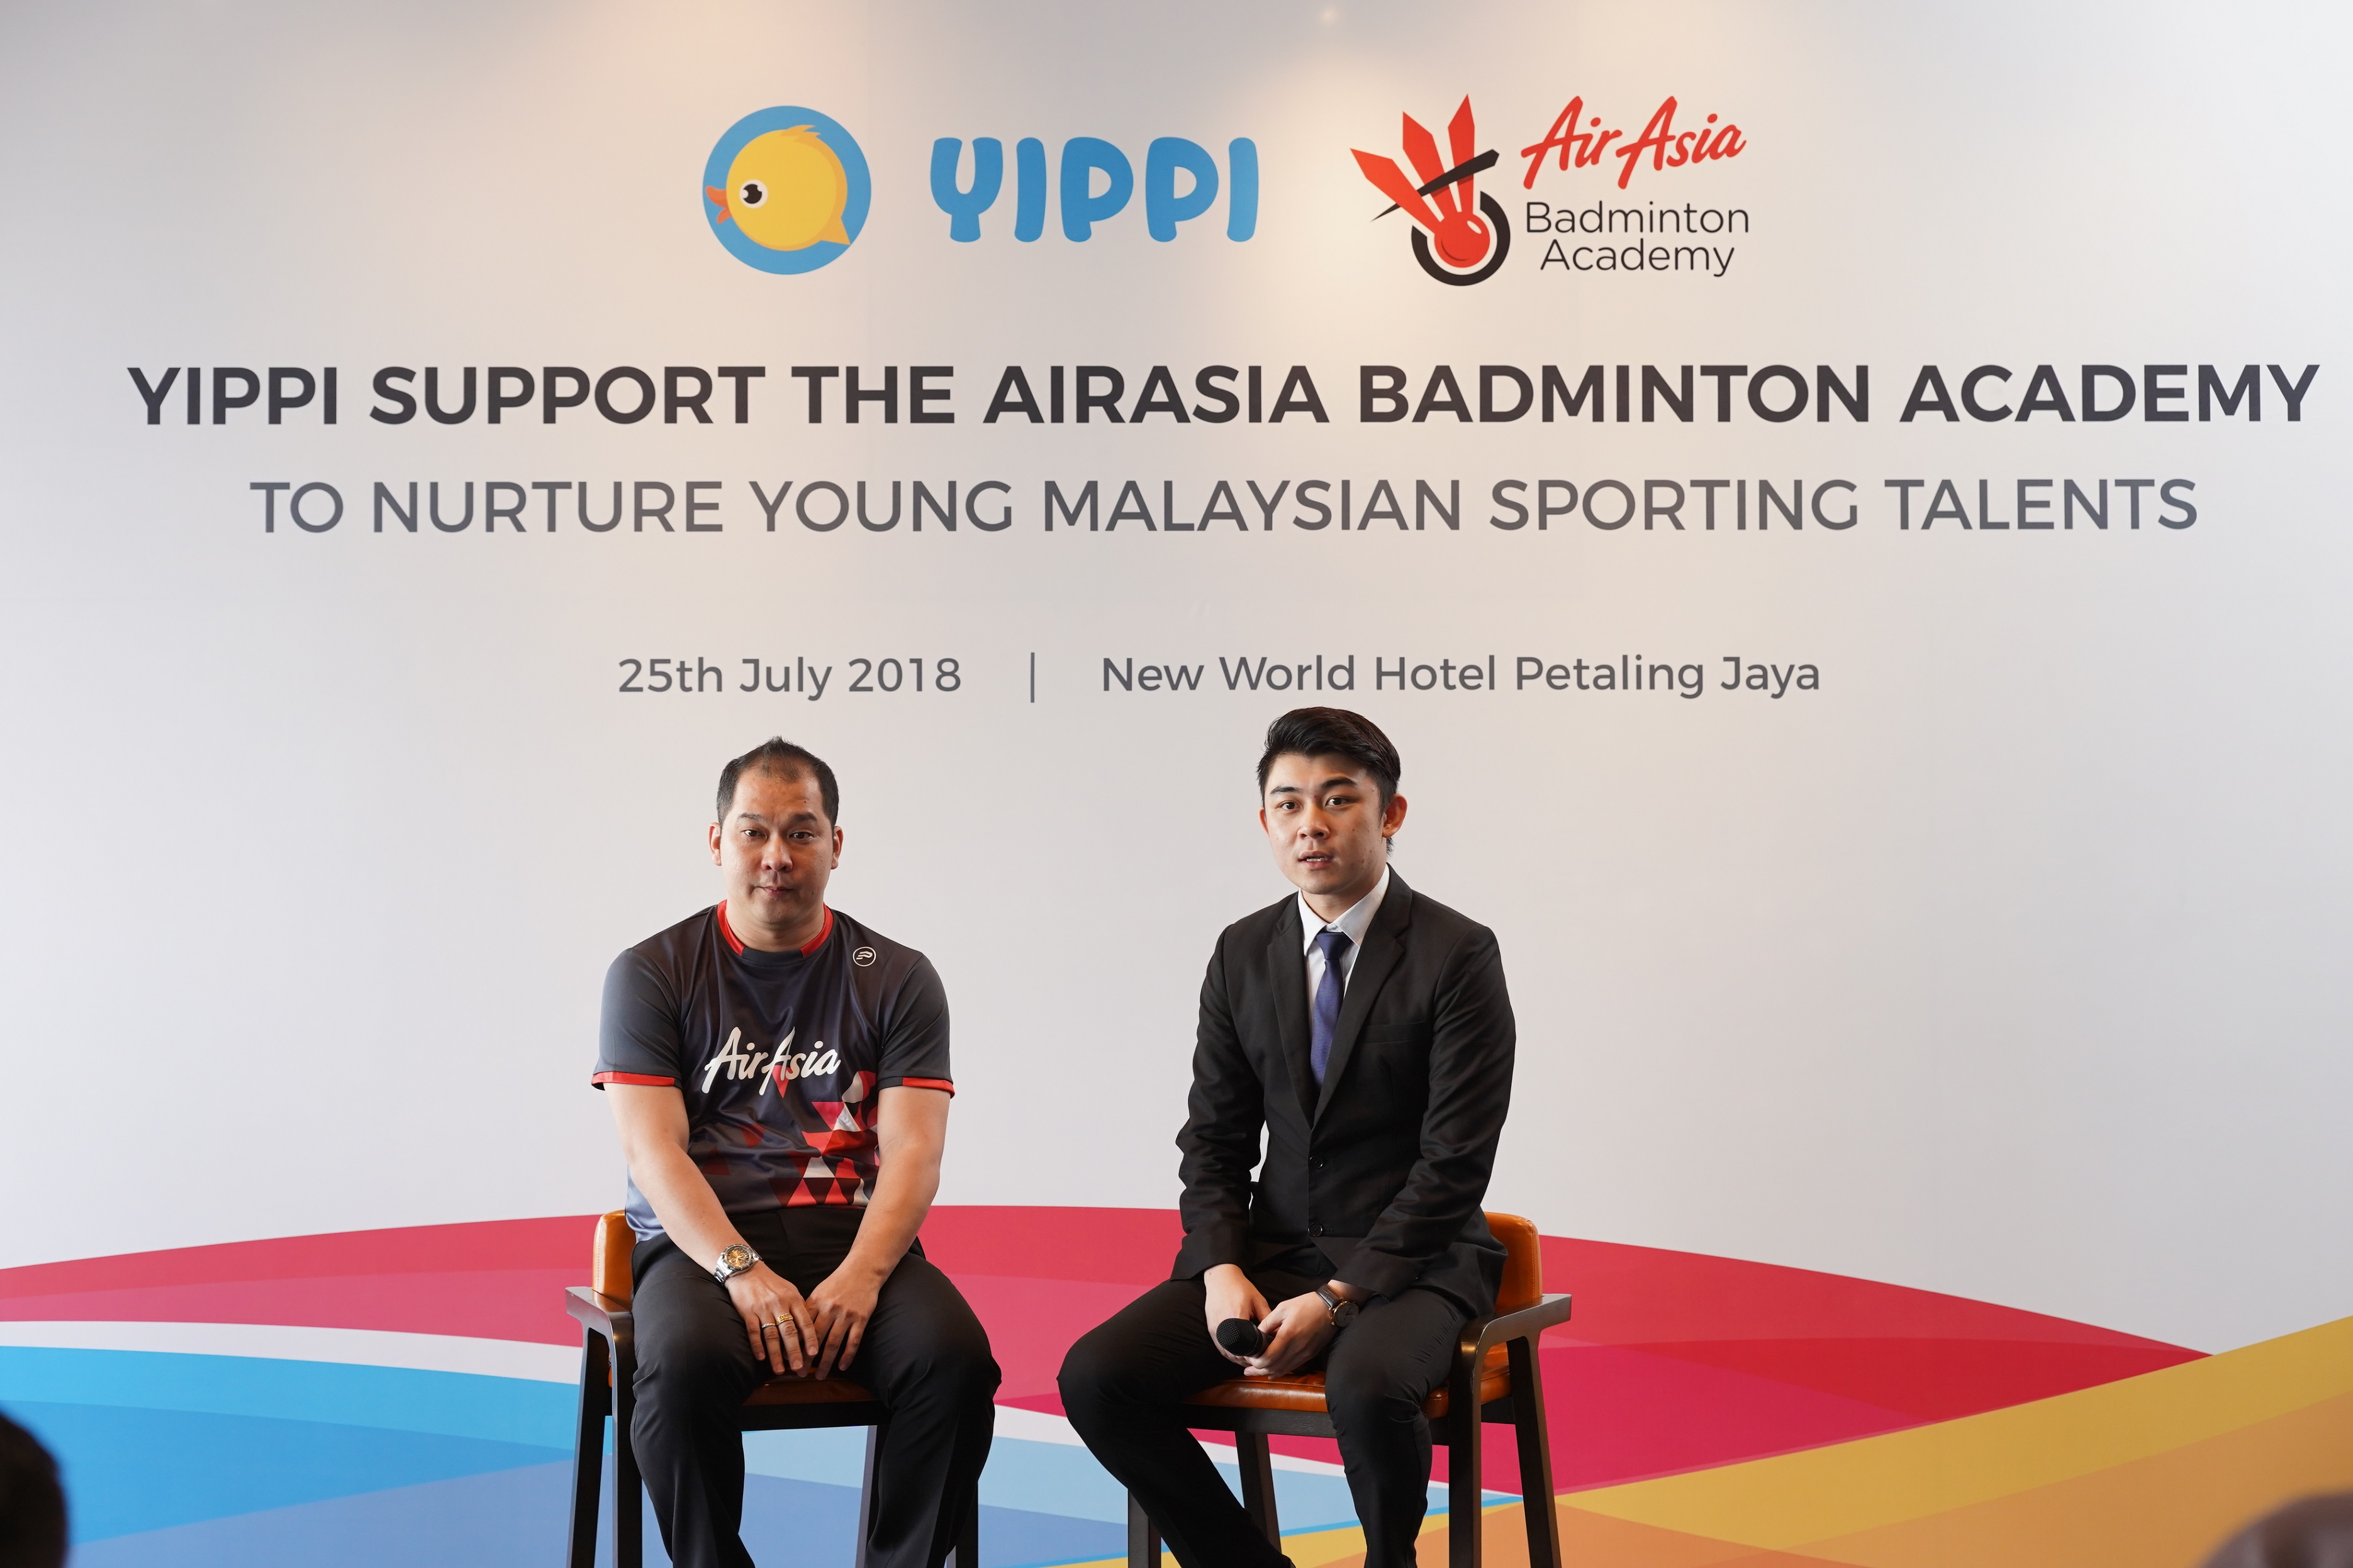 Image 5 – Jason Lim, President of AirAsia Badminton Academy and Tan Fei, Business Development Manager of Toga Limited during the press conference